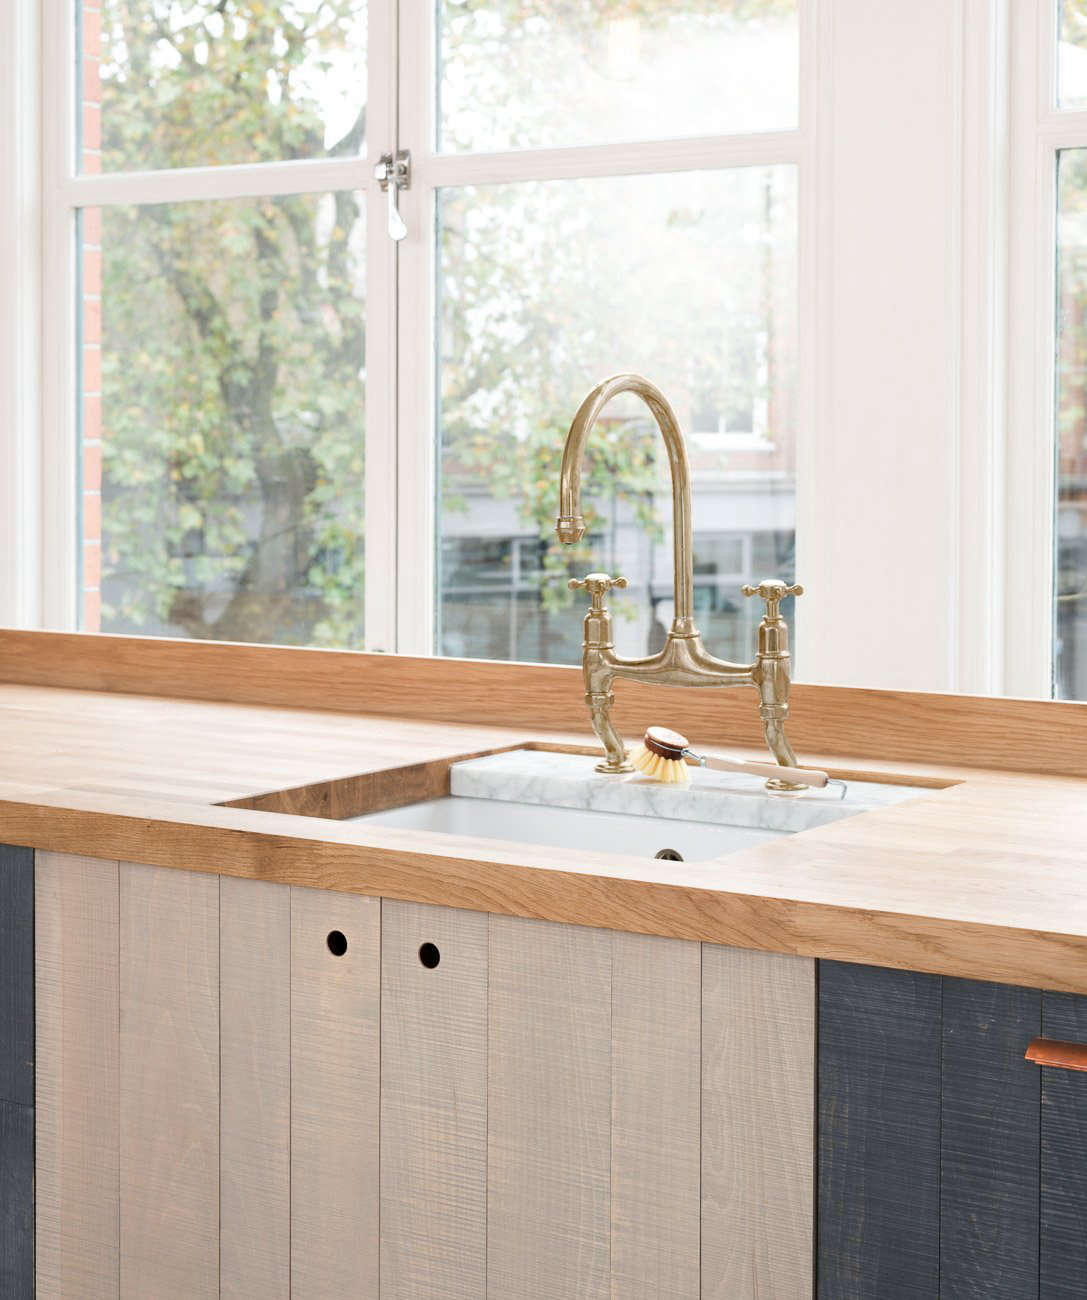 Remodeling 101: Cutout Cabinet Pulls - Remodelista